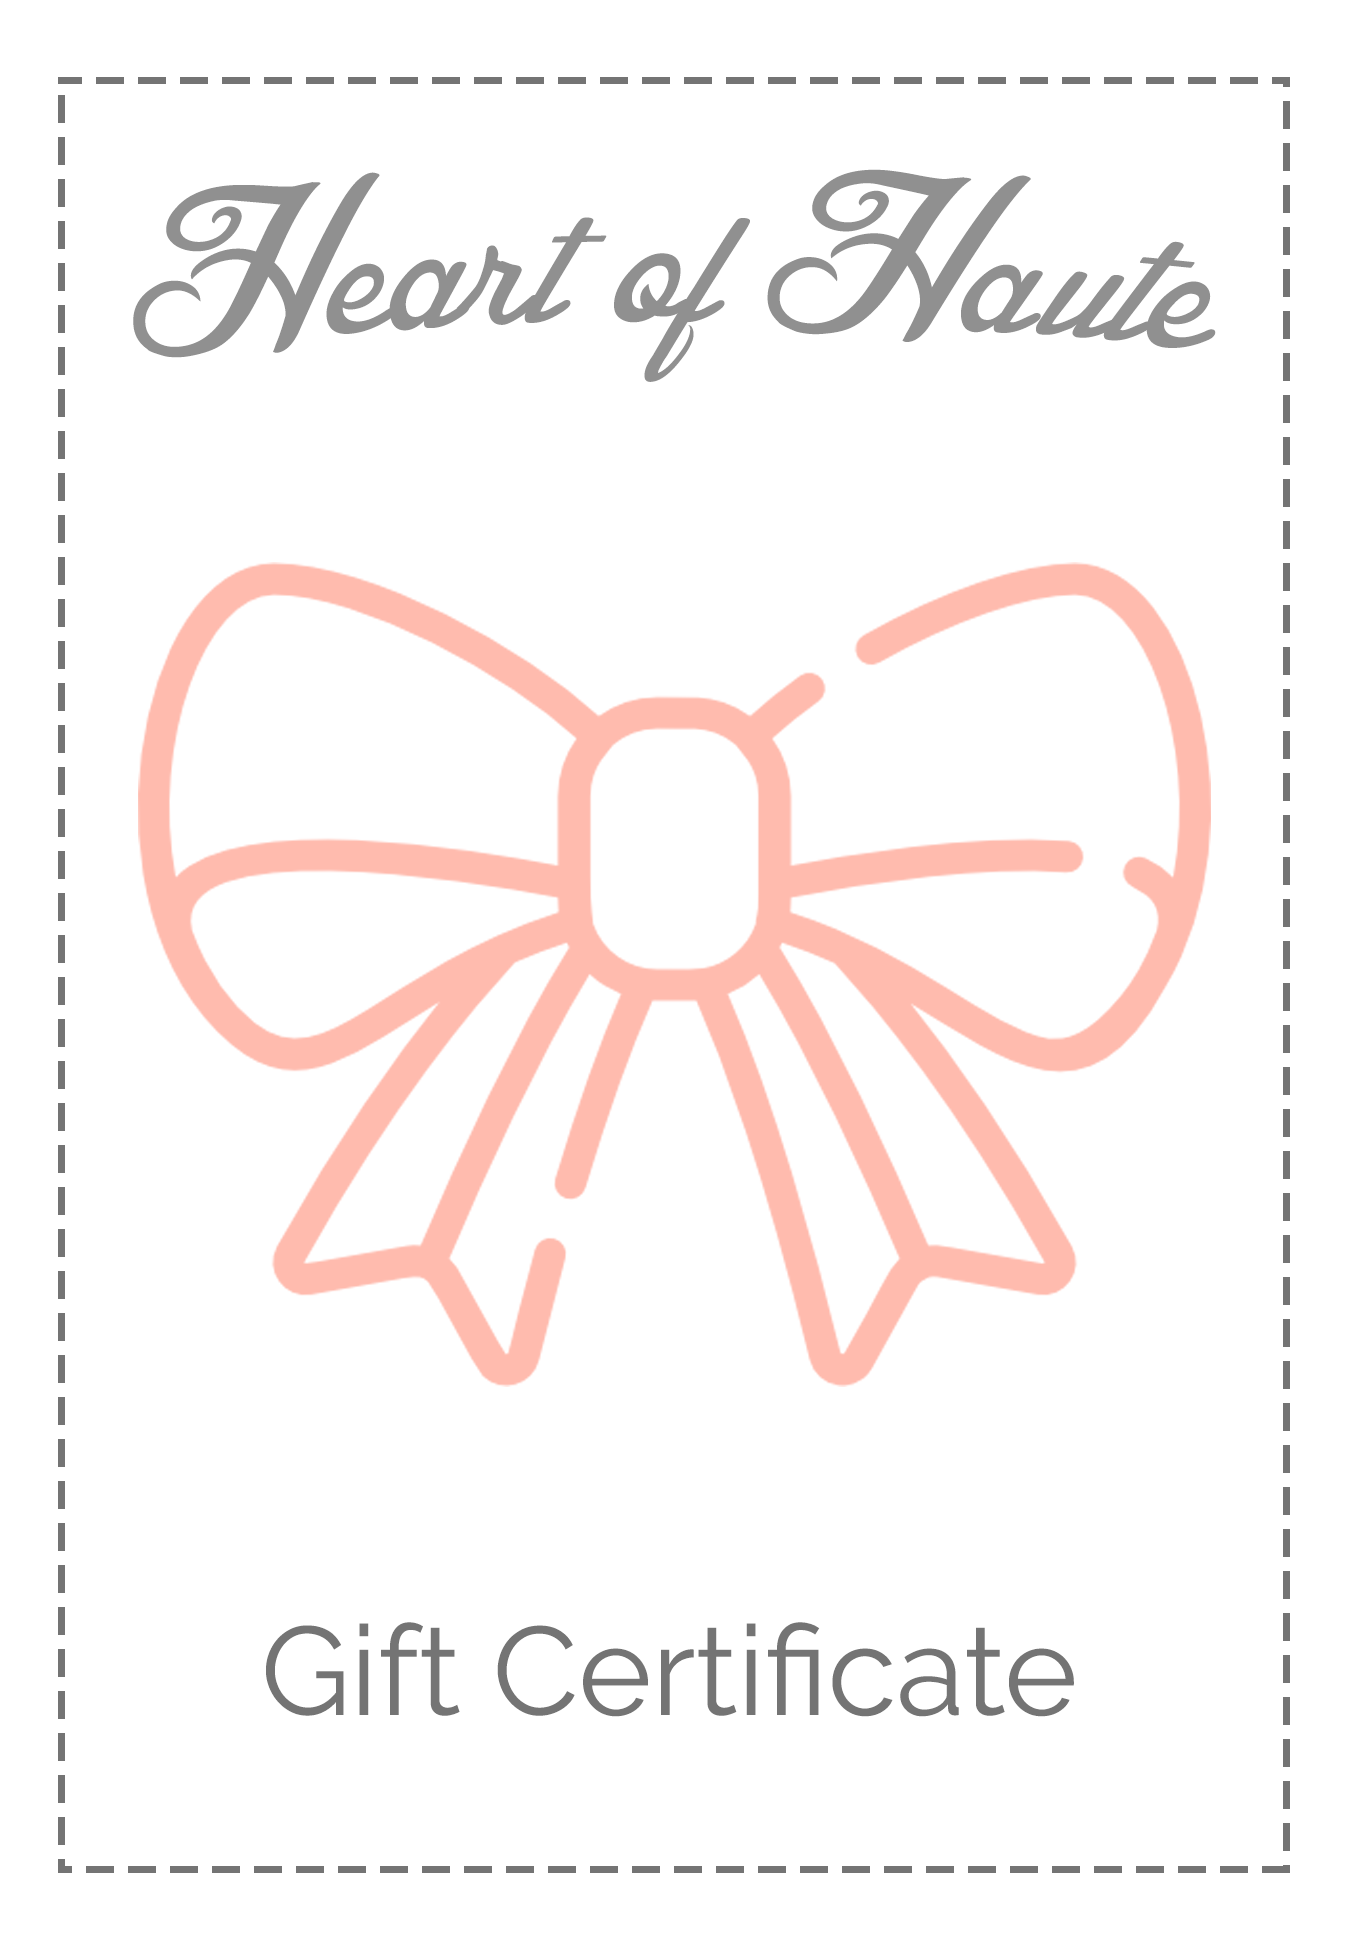 Heart of Haute Gift Card - Heart of Haute